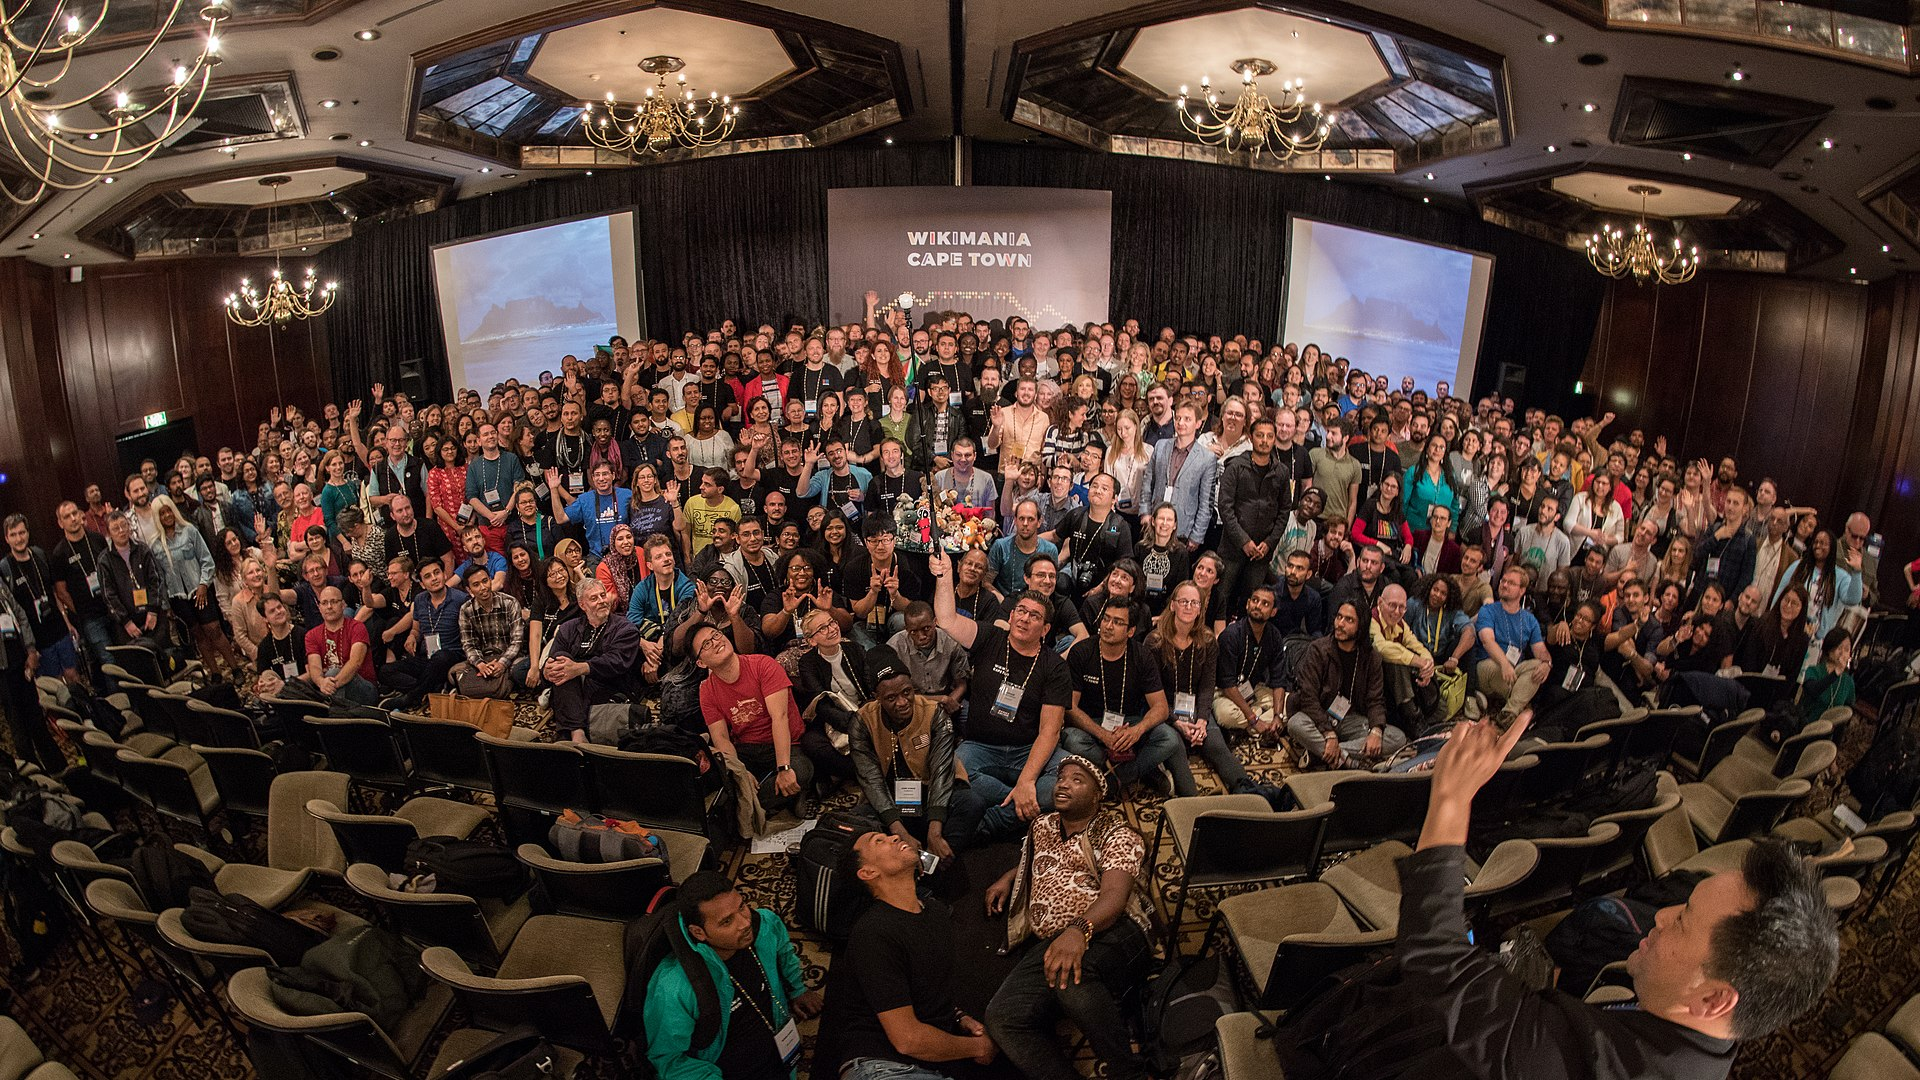 "Martin Kraft (https://commons.wikimedia.org/wiki/File:MJK_26491_Wikimania_2018_group_photo.jpg), ""MJK 26491 Wikimania 2018 group photo"", https://creativecommons.org/licenses/by-sa/3.0/legalcode"